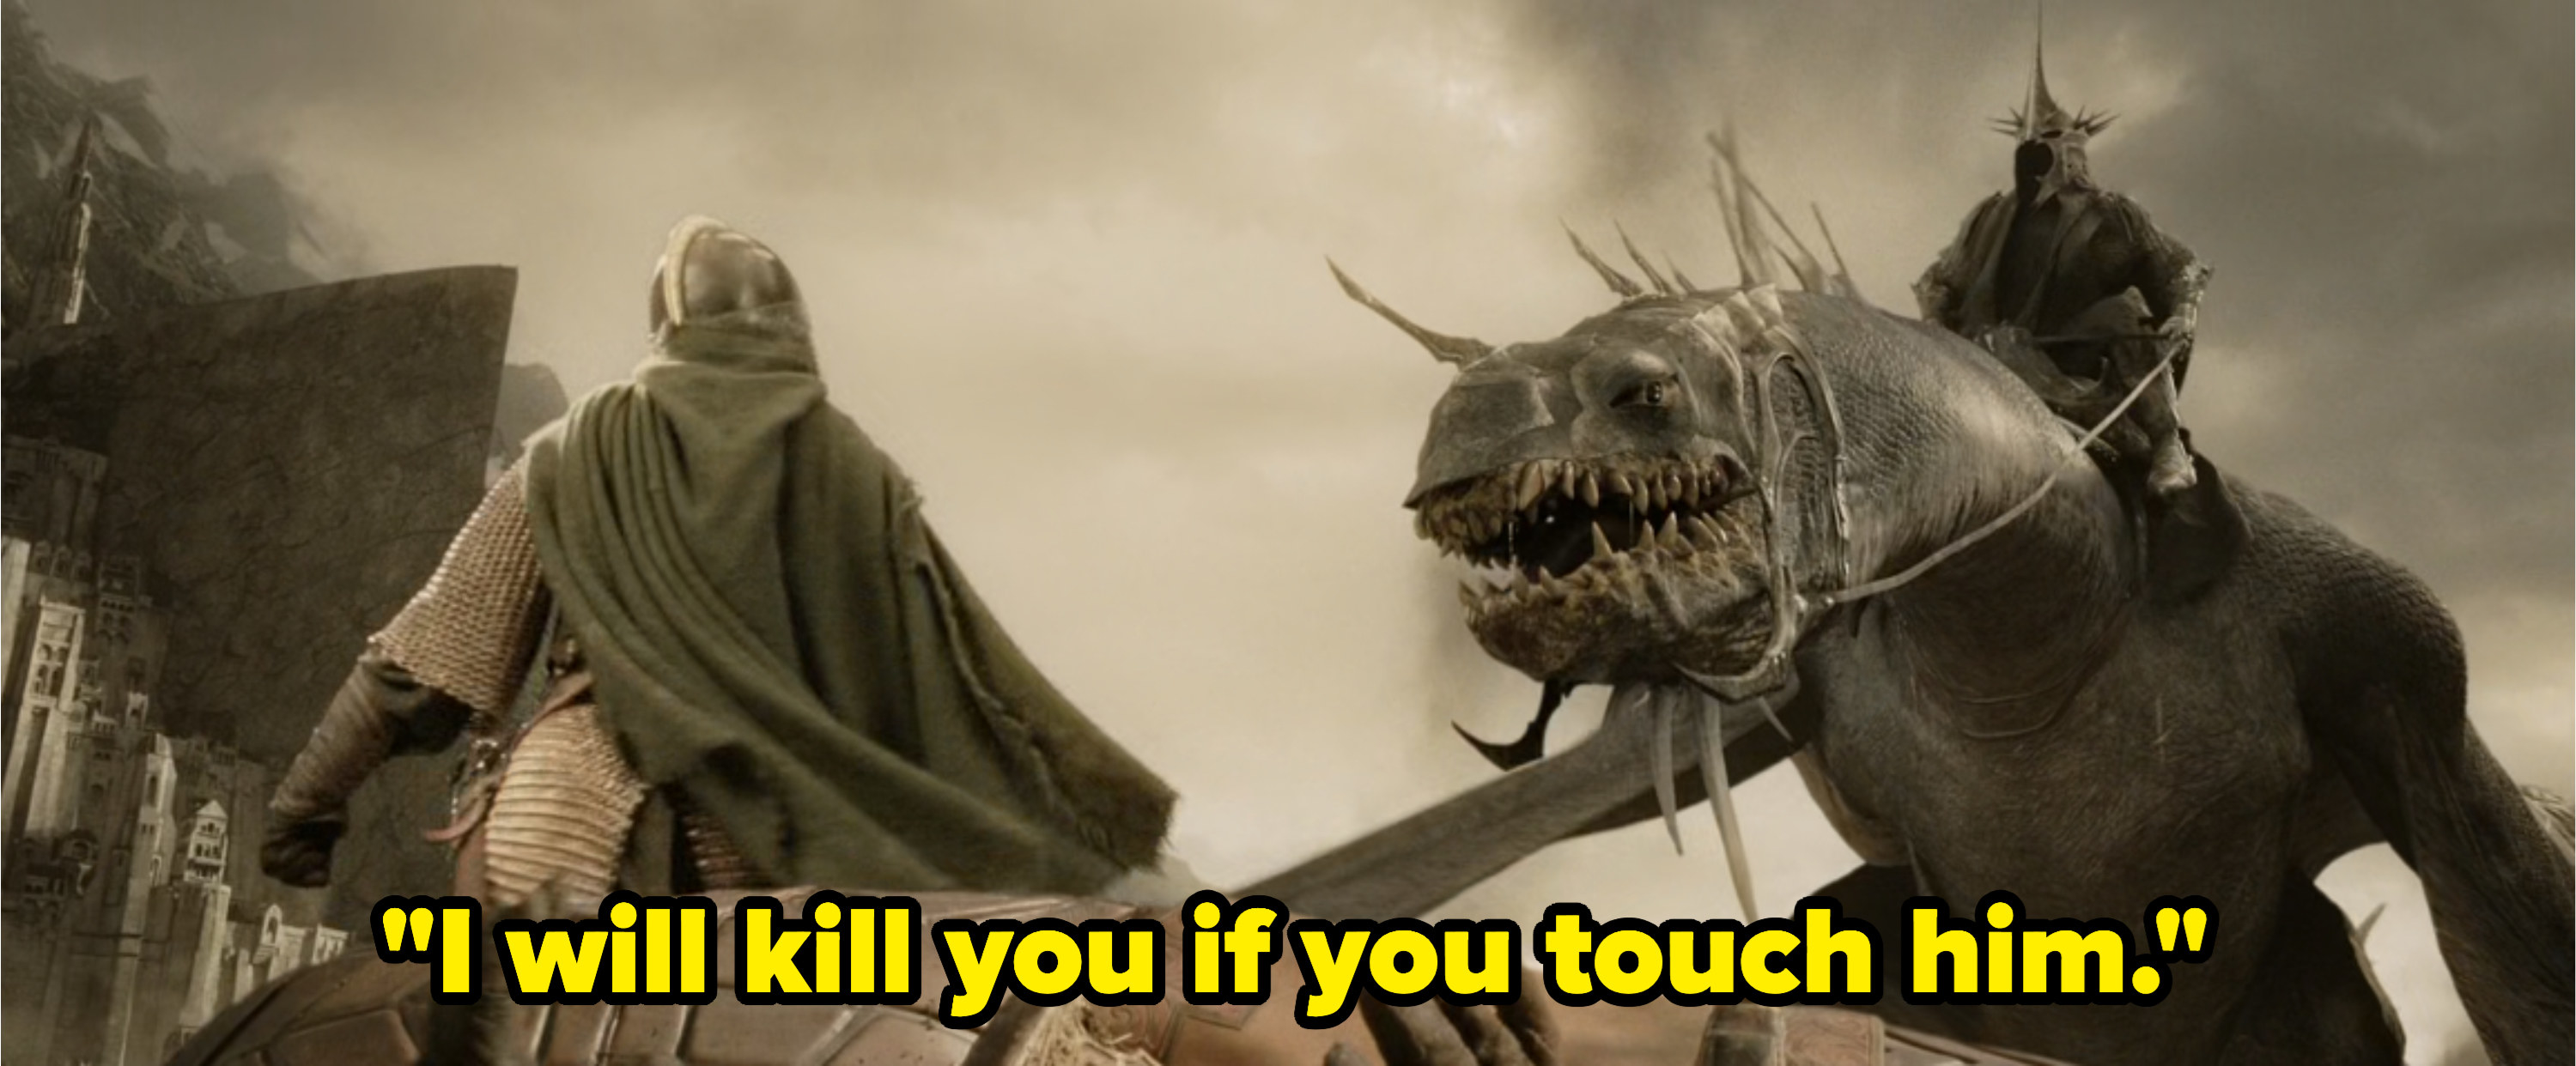 "Éowyn standing in front of Théoden's body, protecting it from the Witch-King; the captionm reads ""I will kill you if you touch him"""